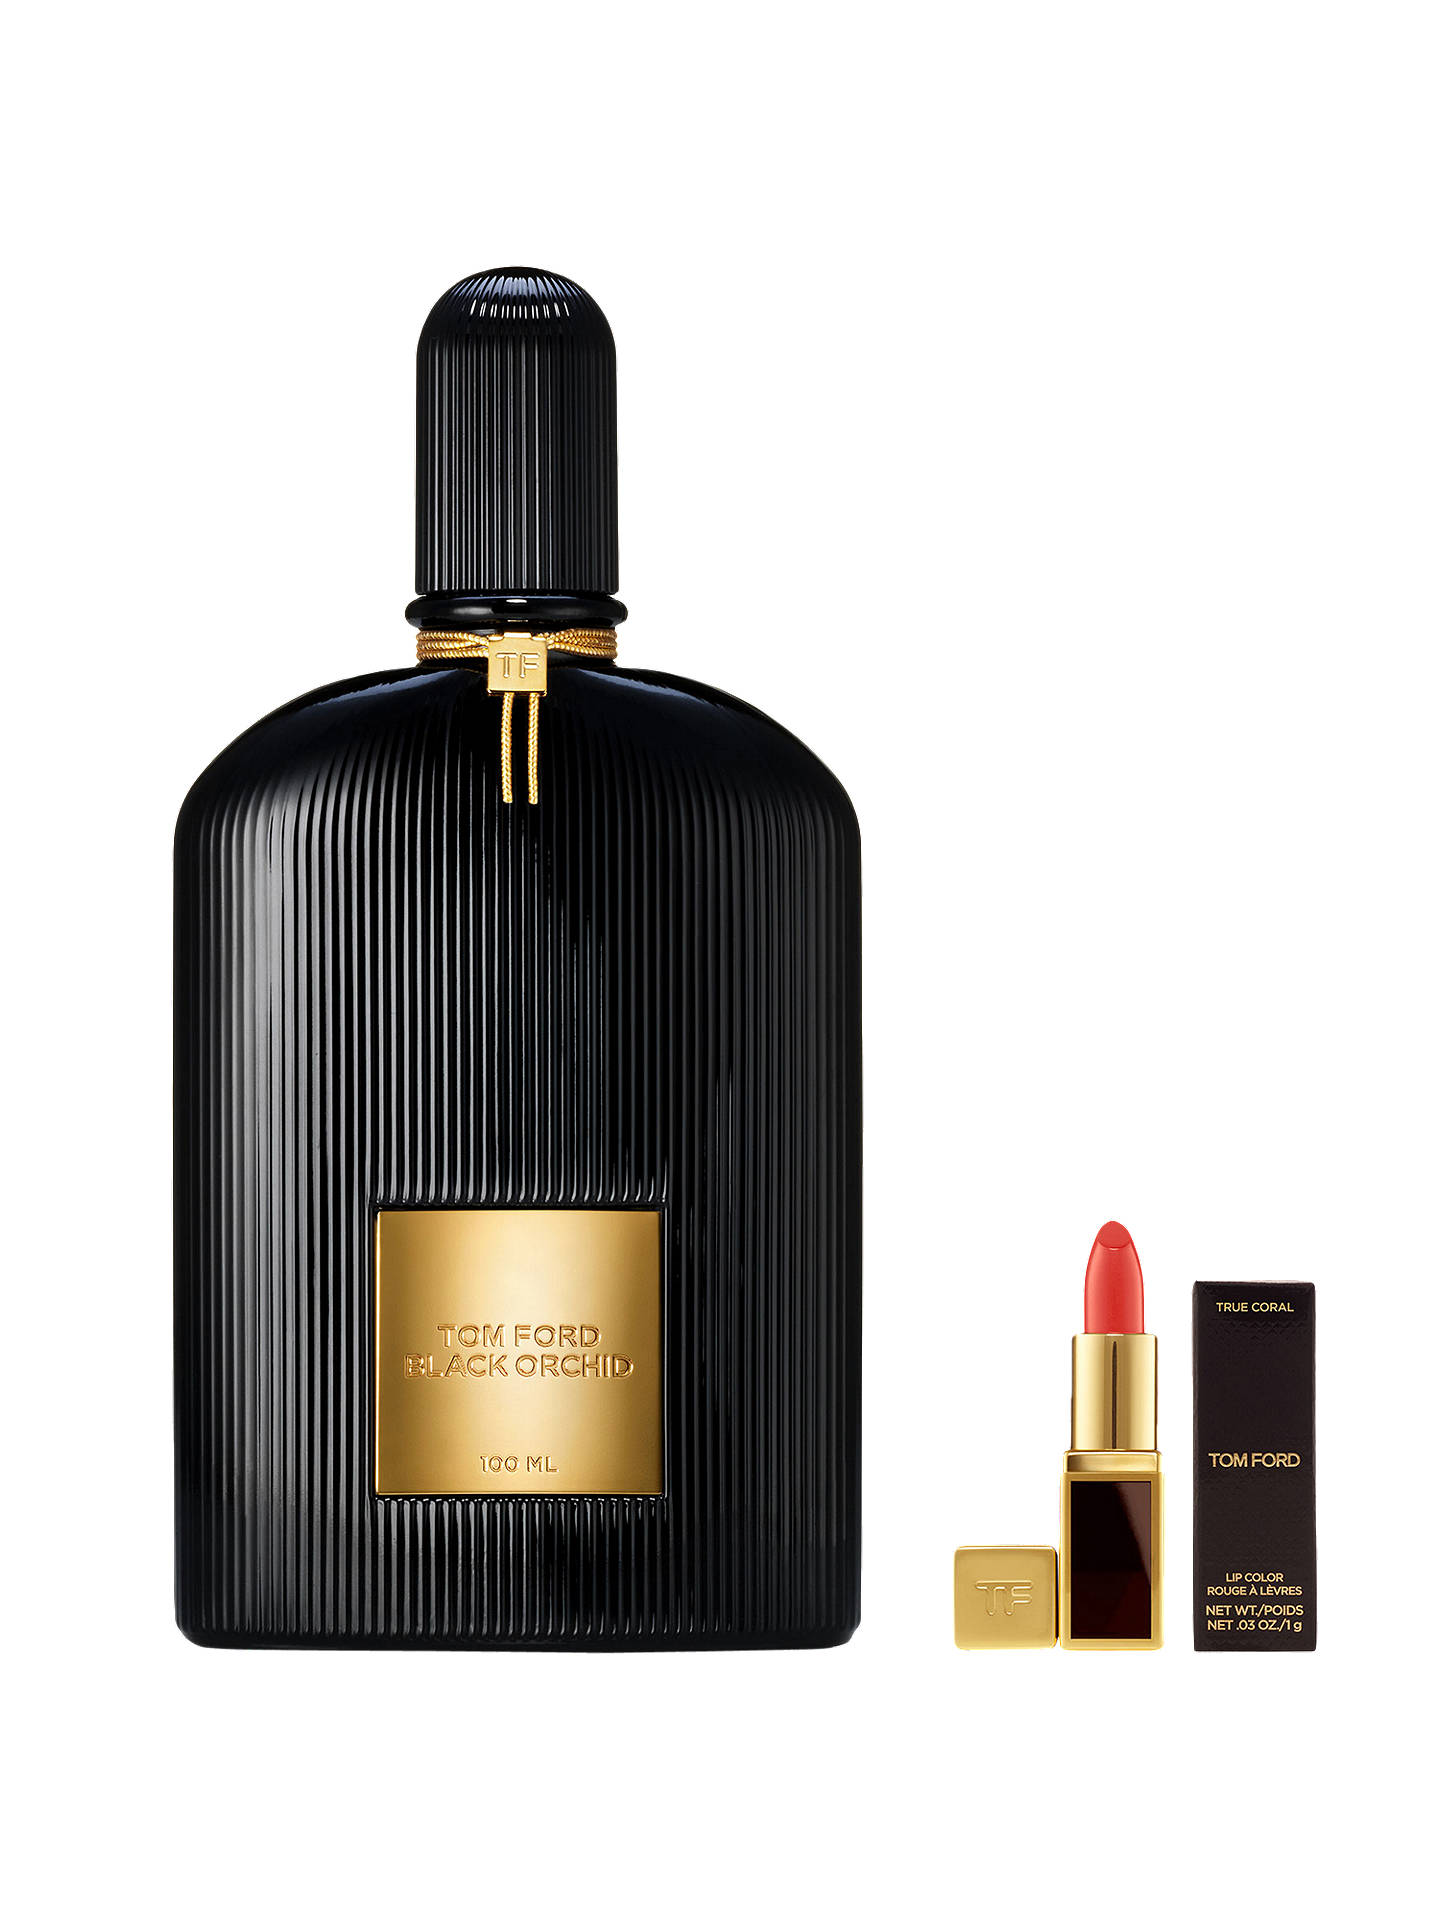 Tom Ford Black Orchid Eau De Parfum 100ml With Deluxe Lip Colour